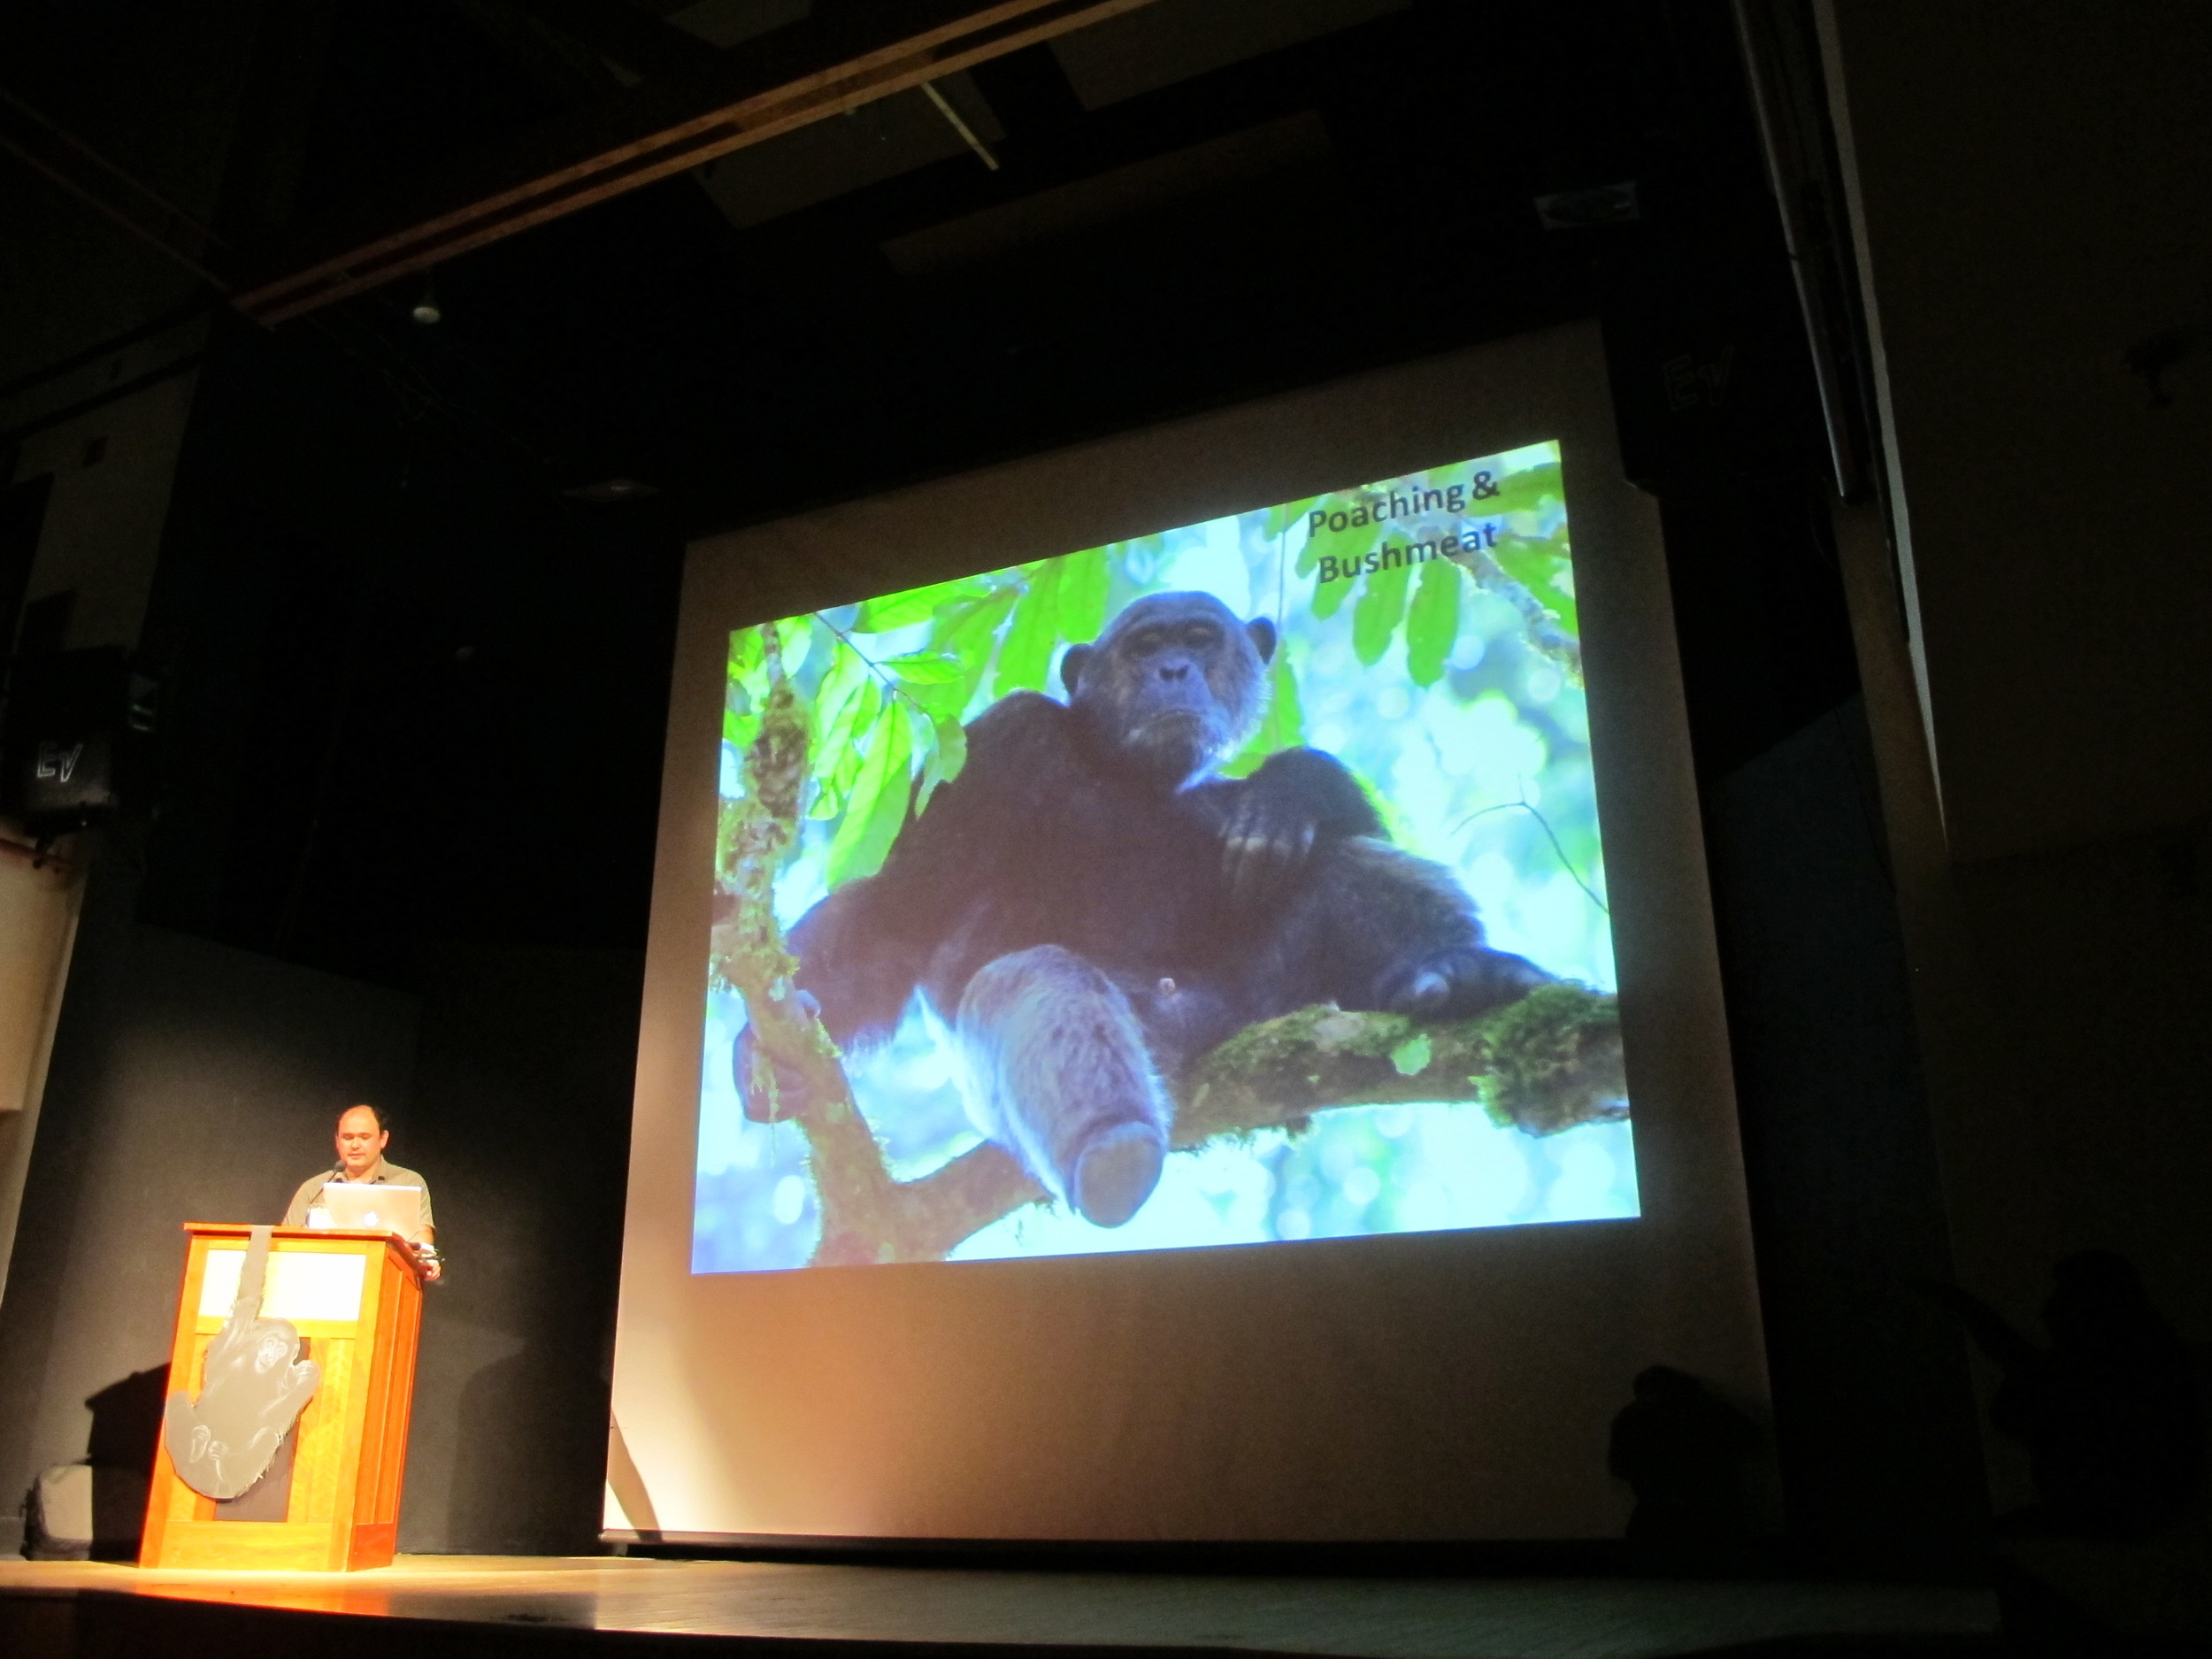 Lilian discussed everything from conservation technology to Jane Goodall's 300-day-a-year travel schedule to the problem of poachers killing chimpanzees for bushmeat.